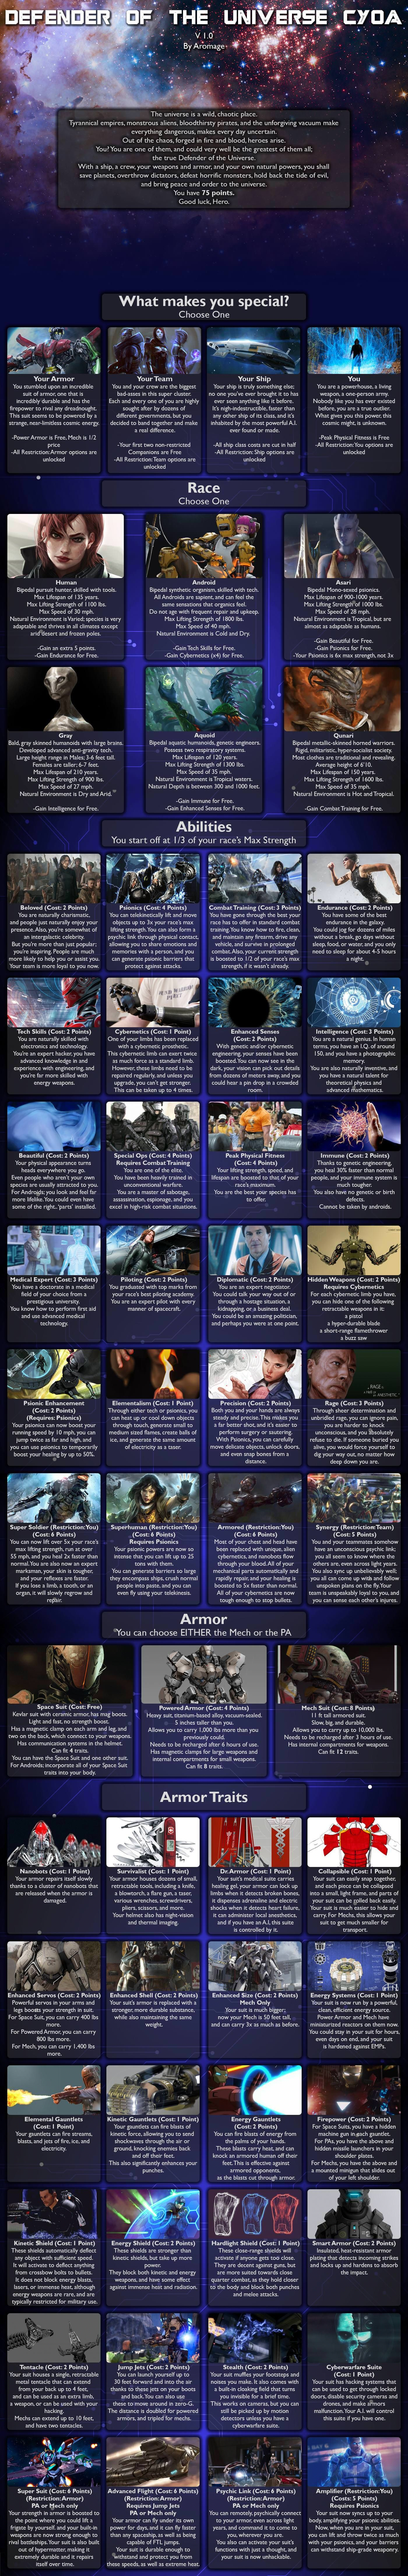 Defender of the Universe CYOA in 2019 | Cyoa | Cyoa, Create